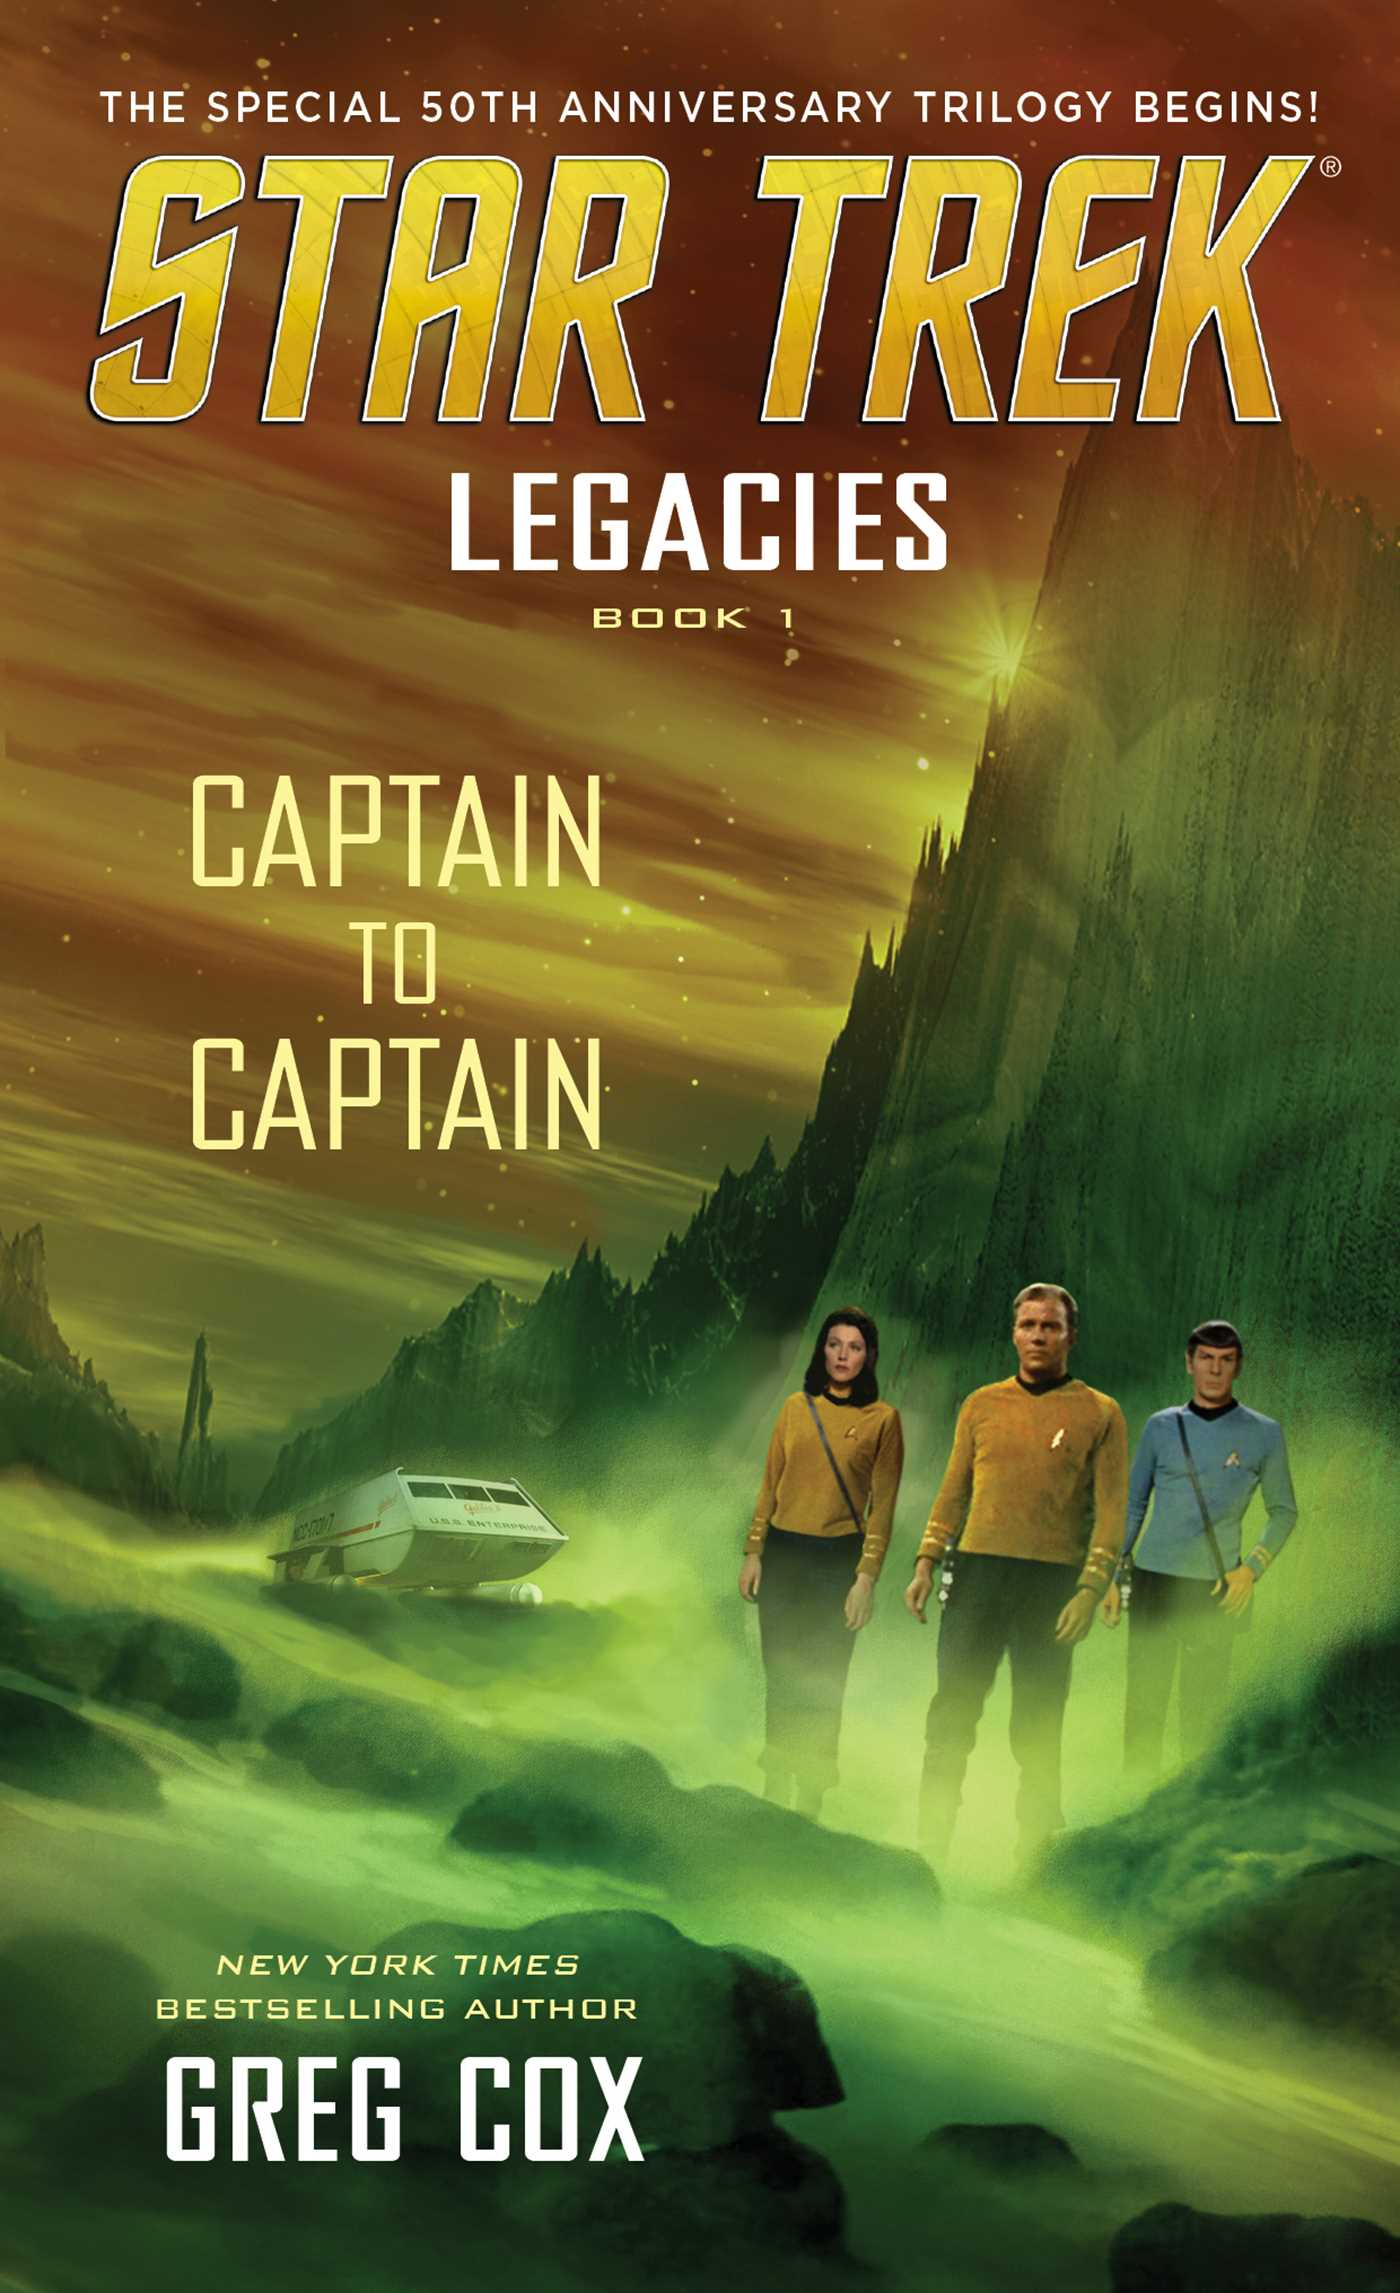 Legacies book 1 captain to captain 9781501125294 hr